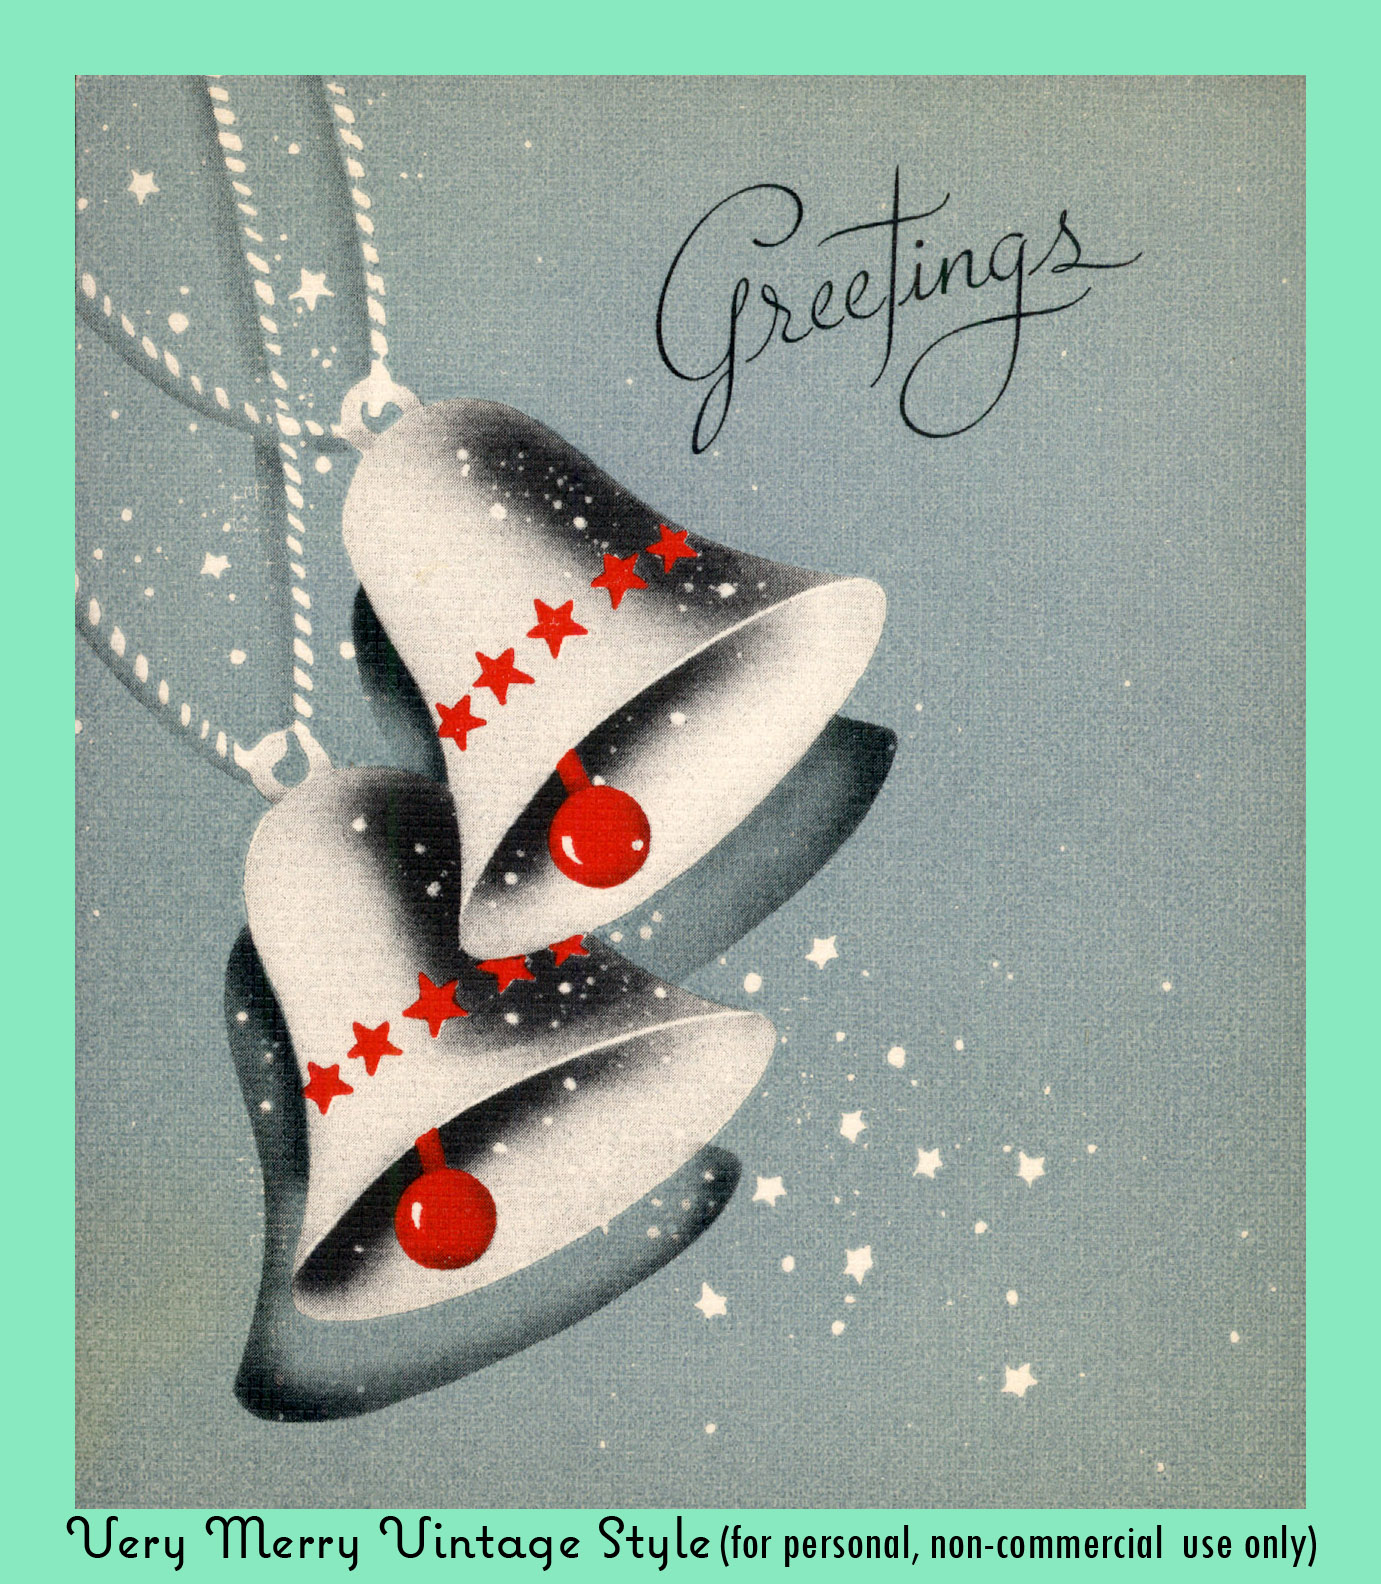 Very Merry Vintage Syle: Vintage Christmas Card {Silver Bells}